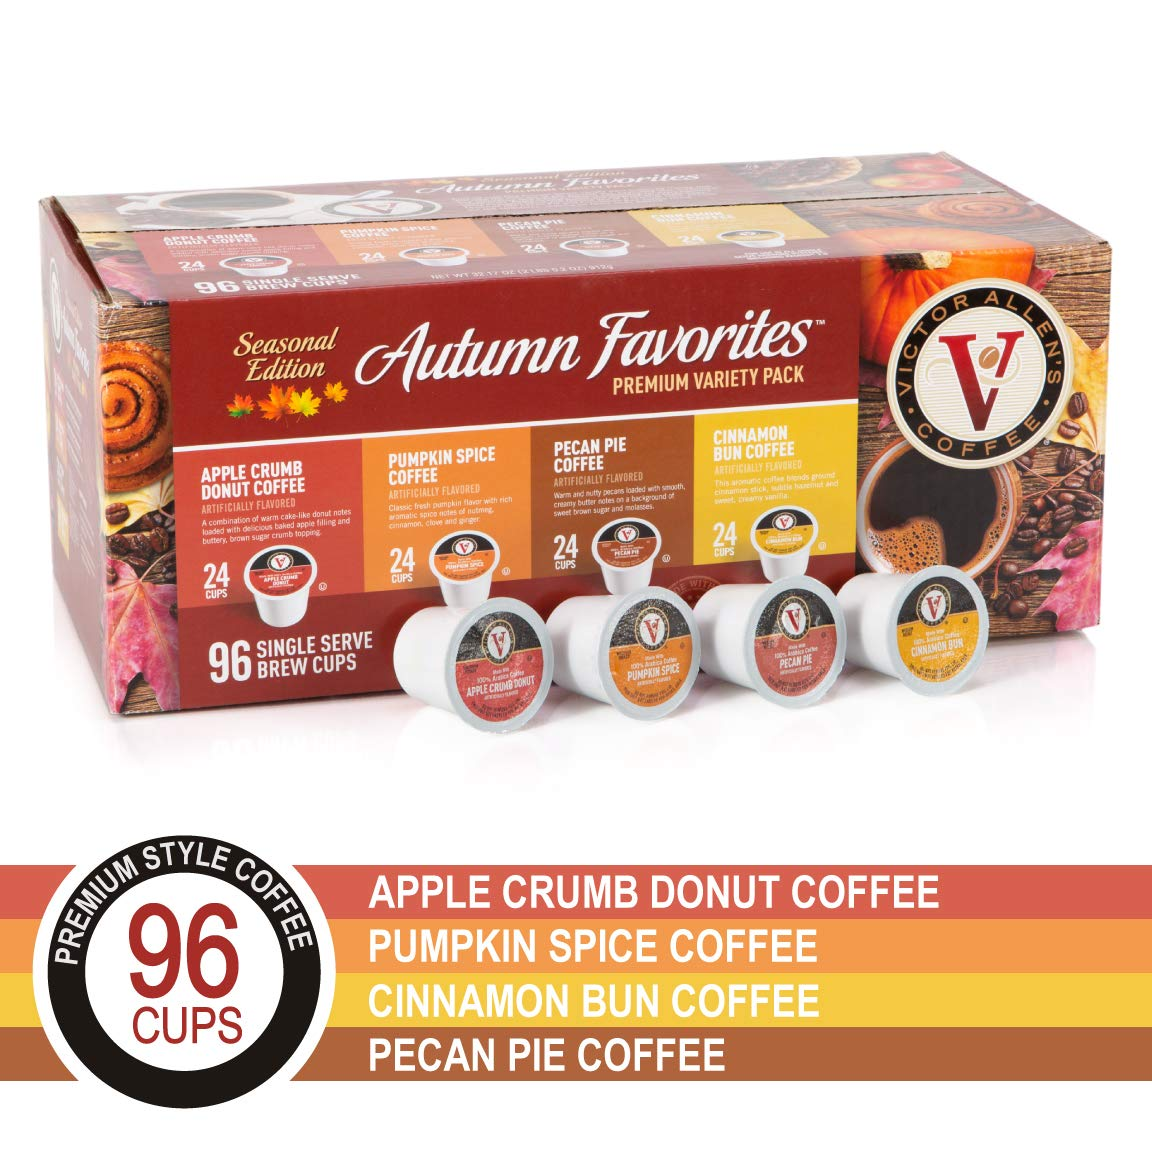 Autumn Favoritesfor K-Cup Keurig 2.0 Brewers, 96 Count, Victor Allen's Coffee Single Serve Coffee Pods